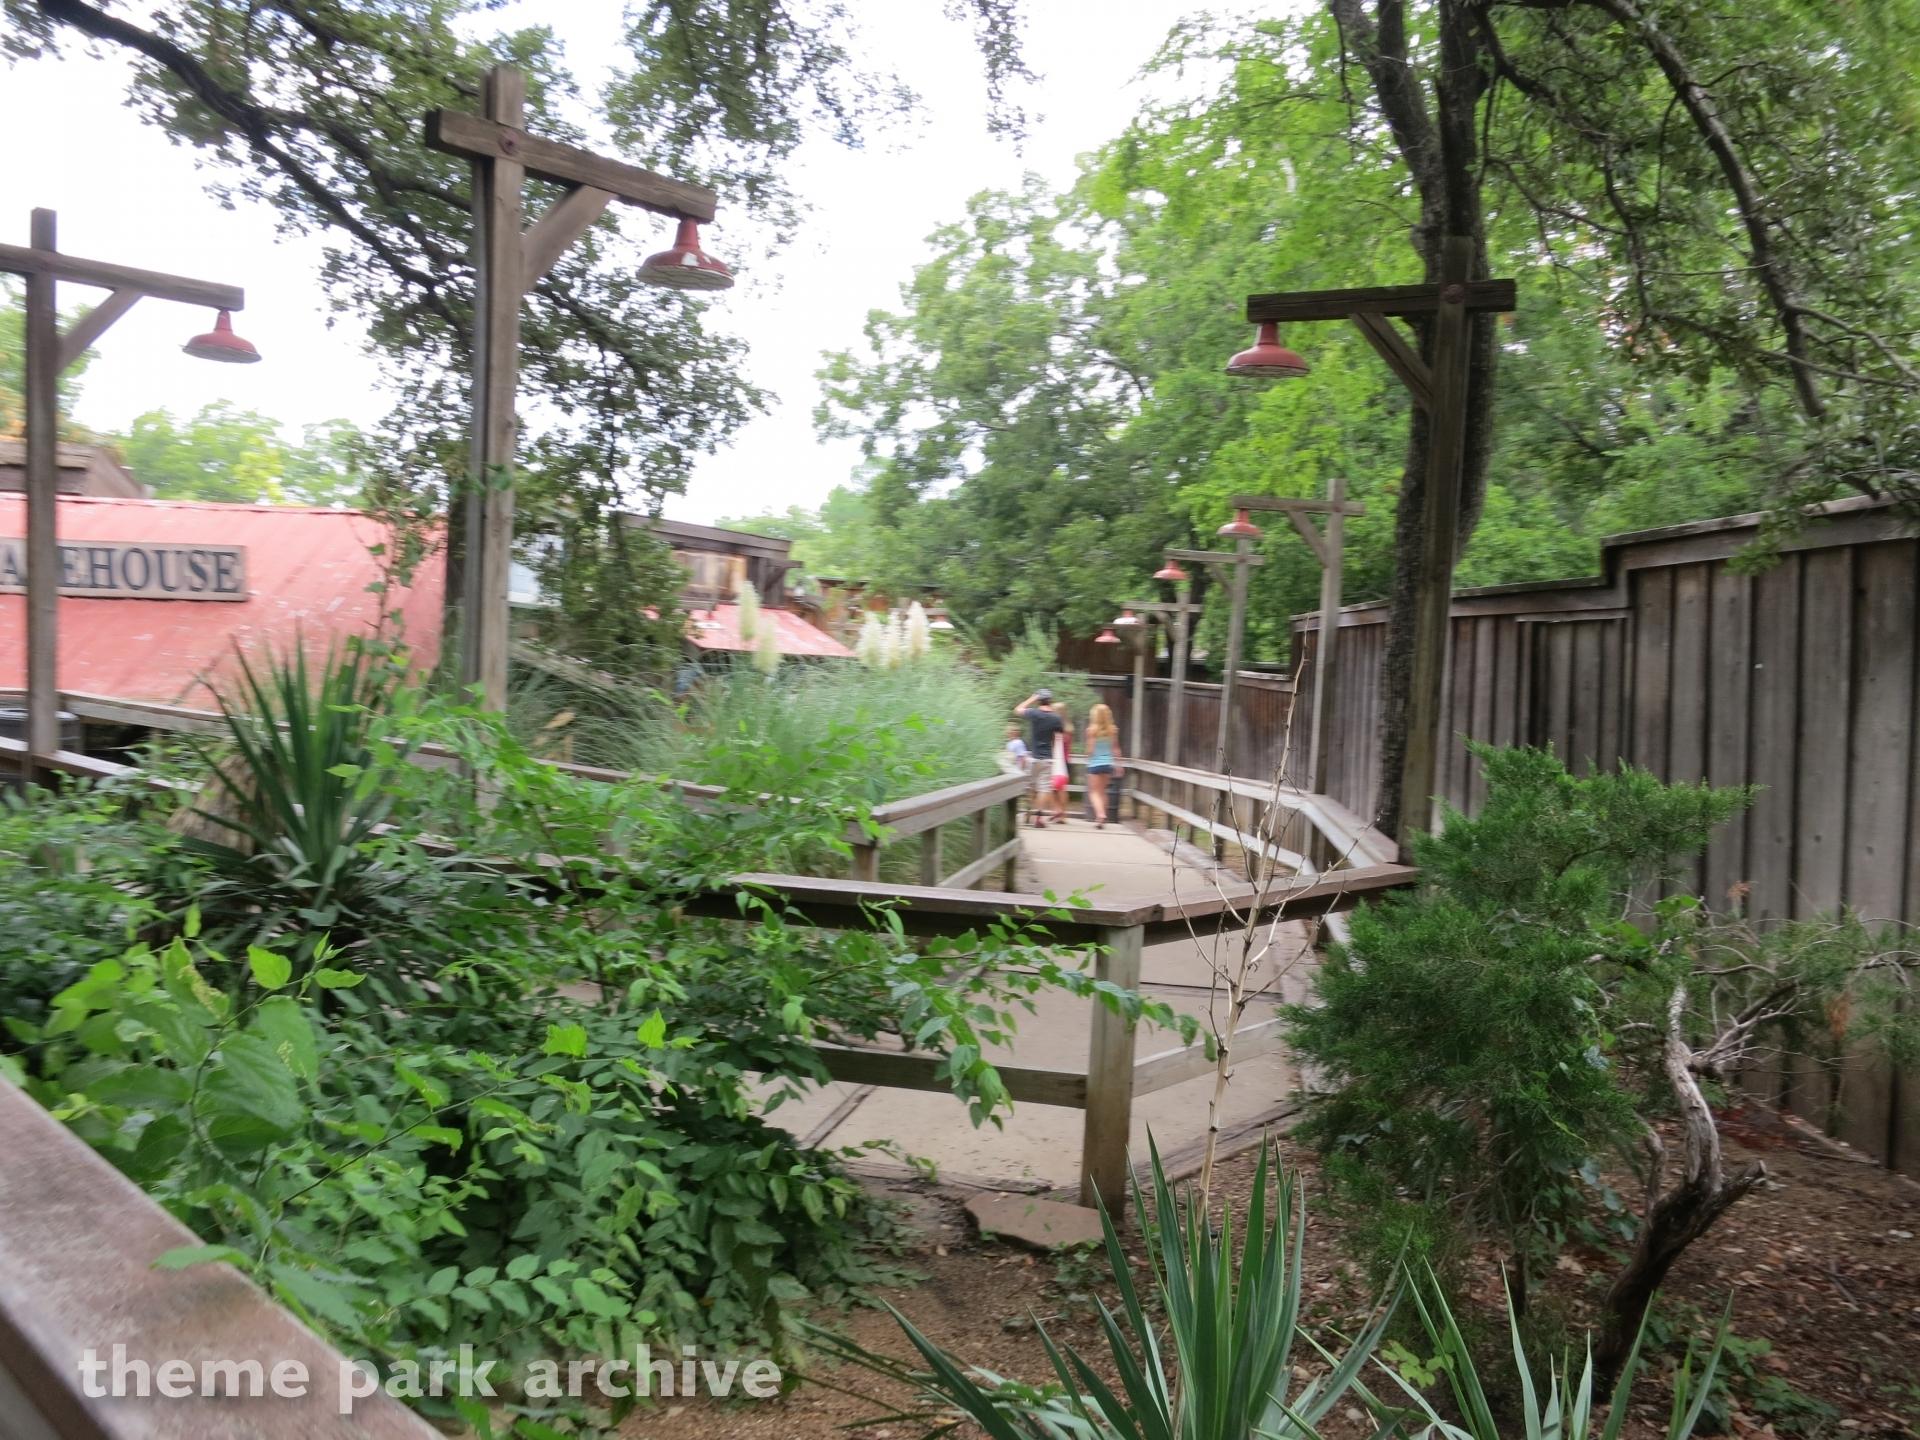 Yosemite Sam and the Gold River Adventure at Six Flags Over Texas